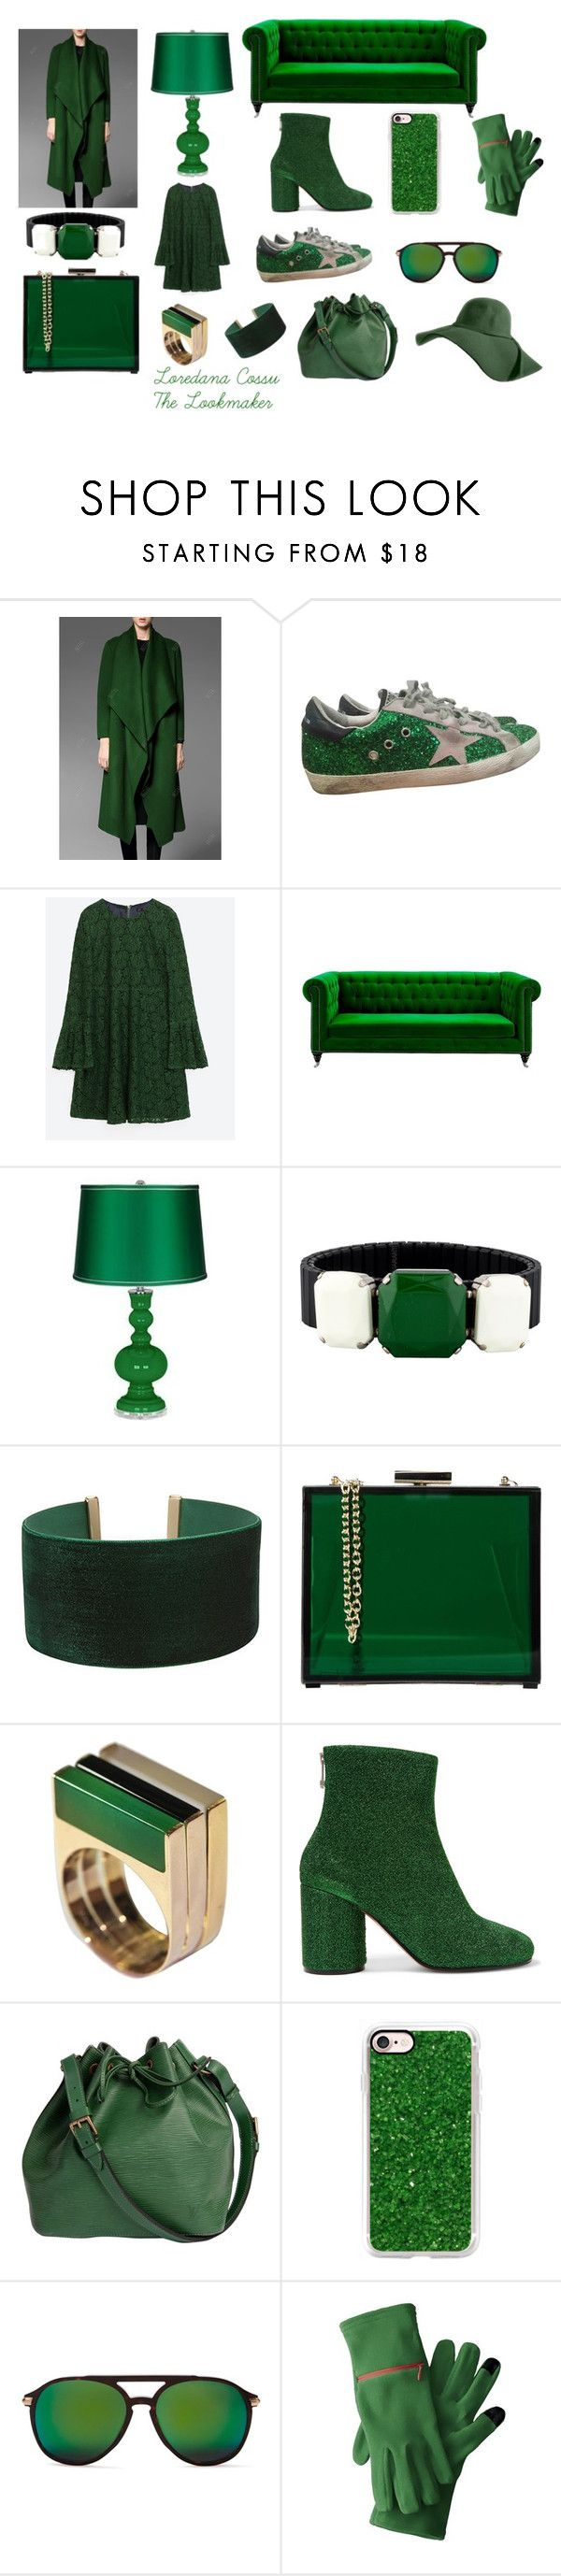 Lush Meadow VERDE SMERALDO by loredanacossu on Polyvore featuring moda, Maison Margiela, Golden Goose, Louis Vuitton, Oui, Odile!, Isabel Marant, ALDO, Wildfox and Casetify